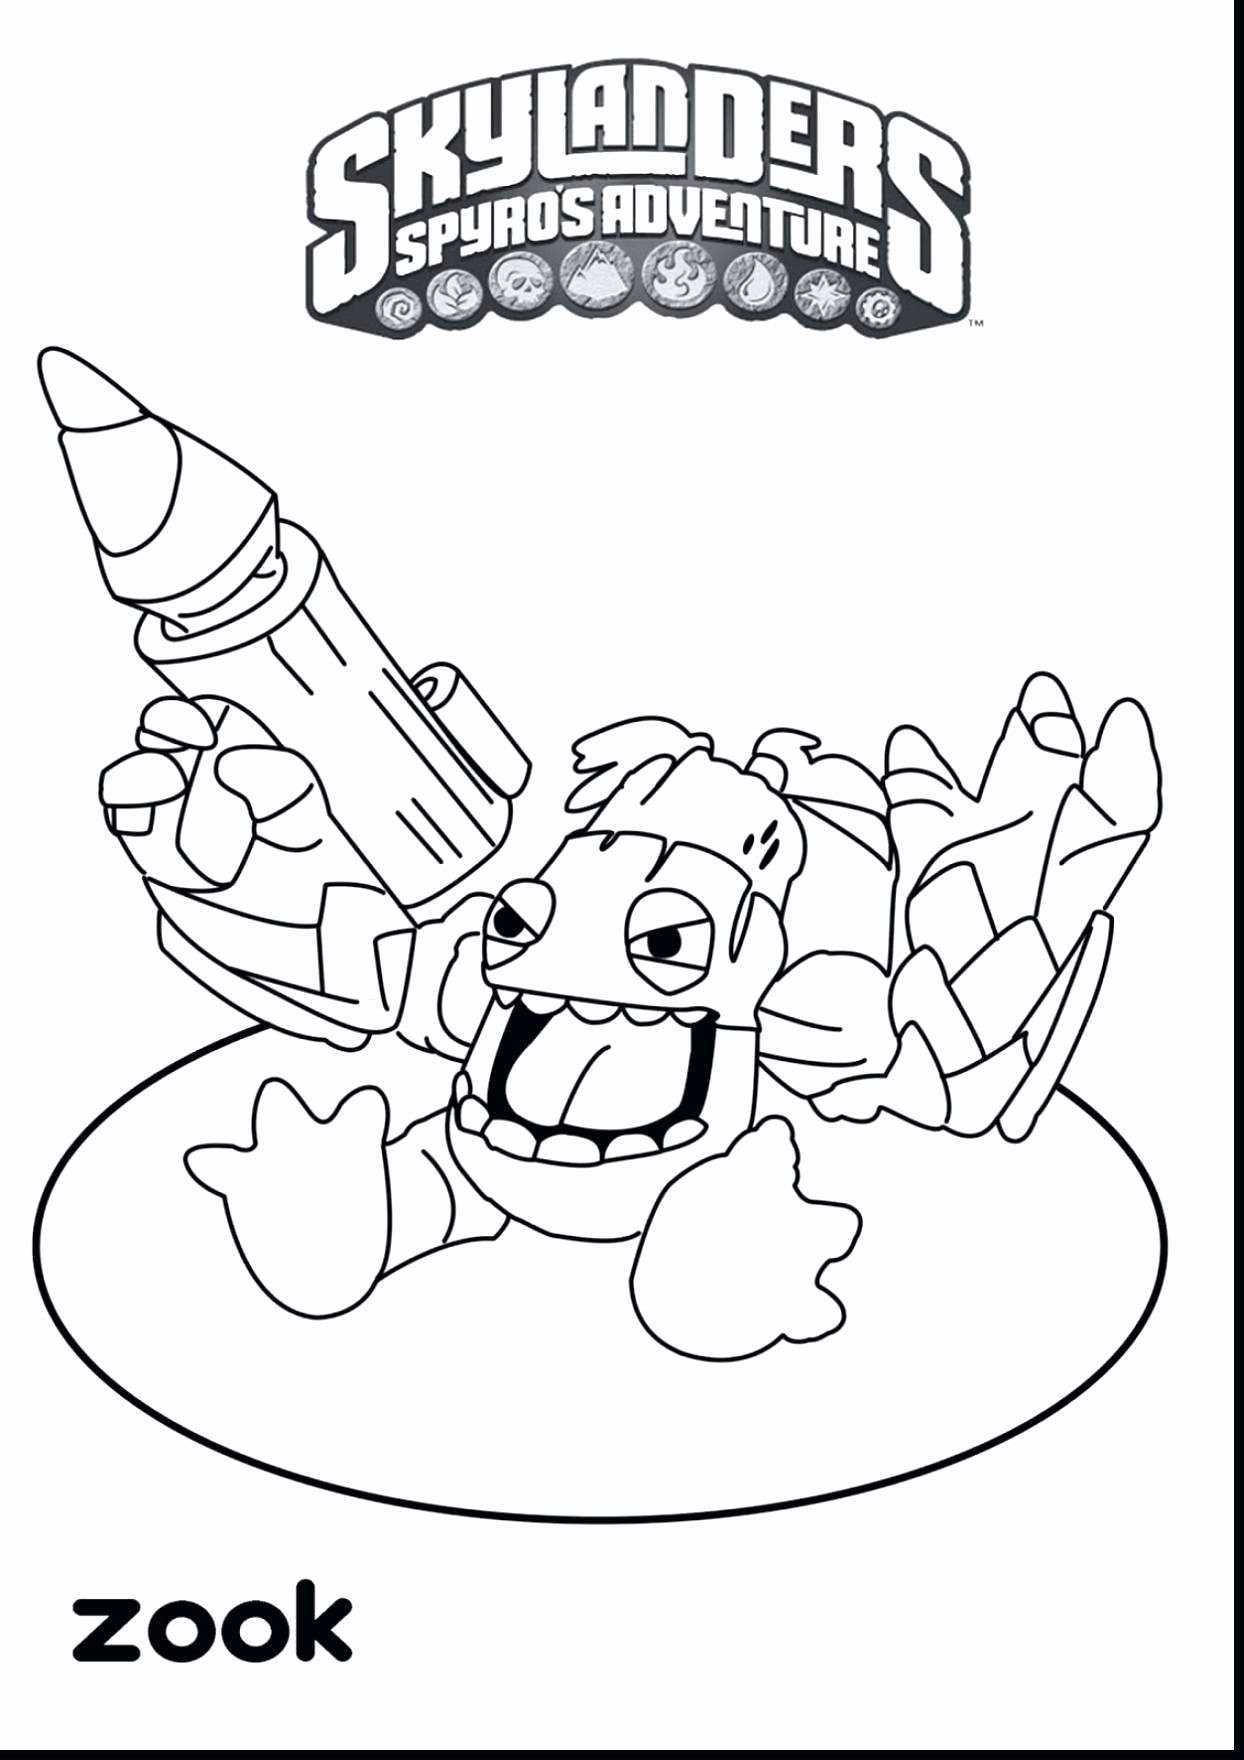 Free Printable Sports Coloring Pages - Printable Sports Coloring Pages for Kids